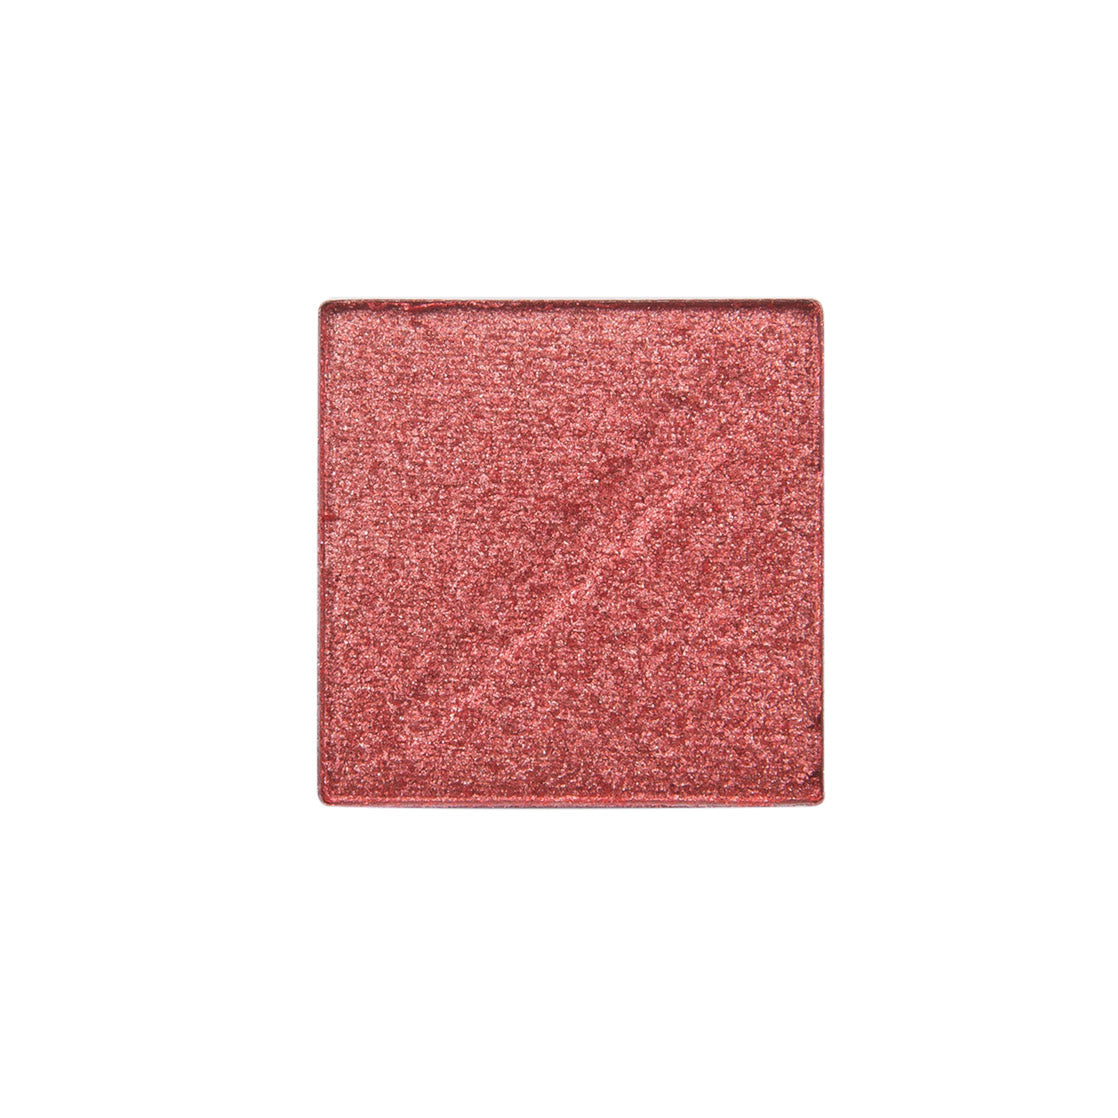 Crystal Eyeshadow - Carnelian